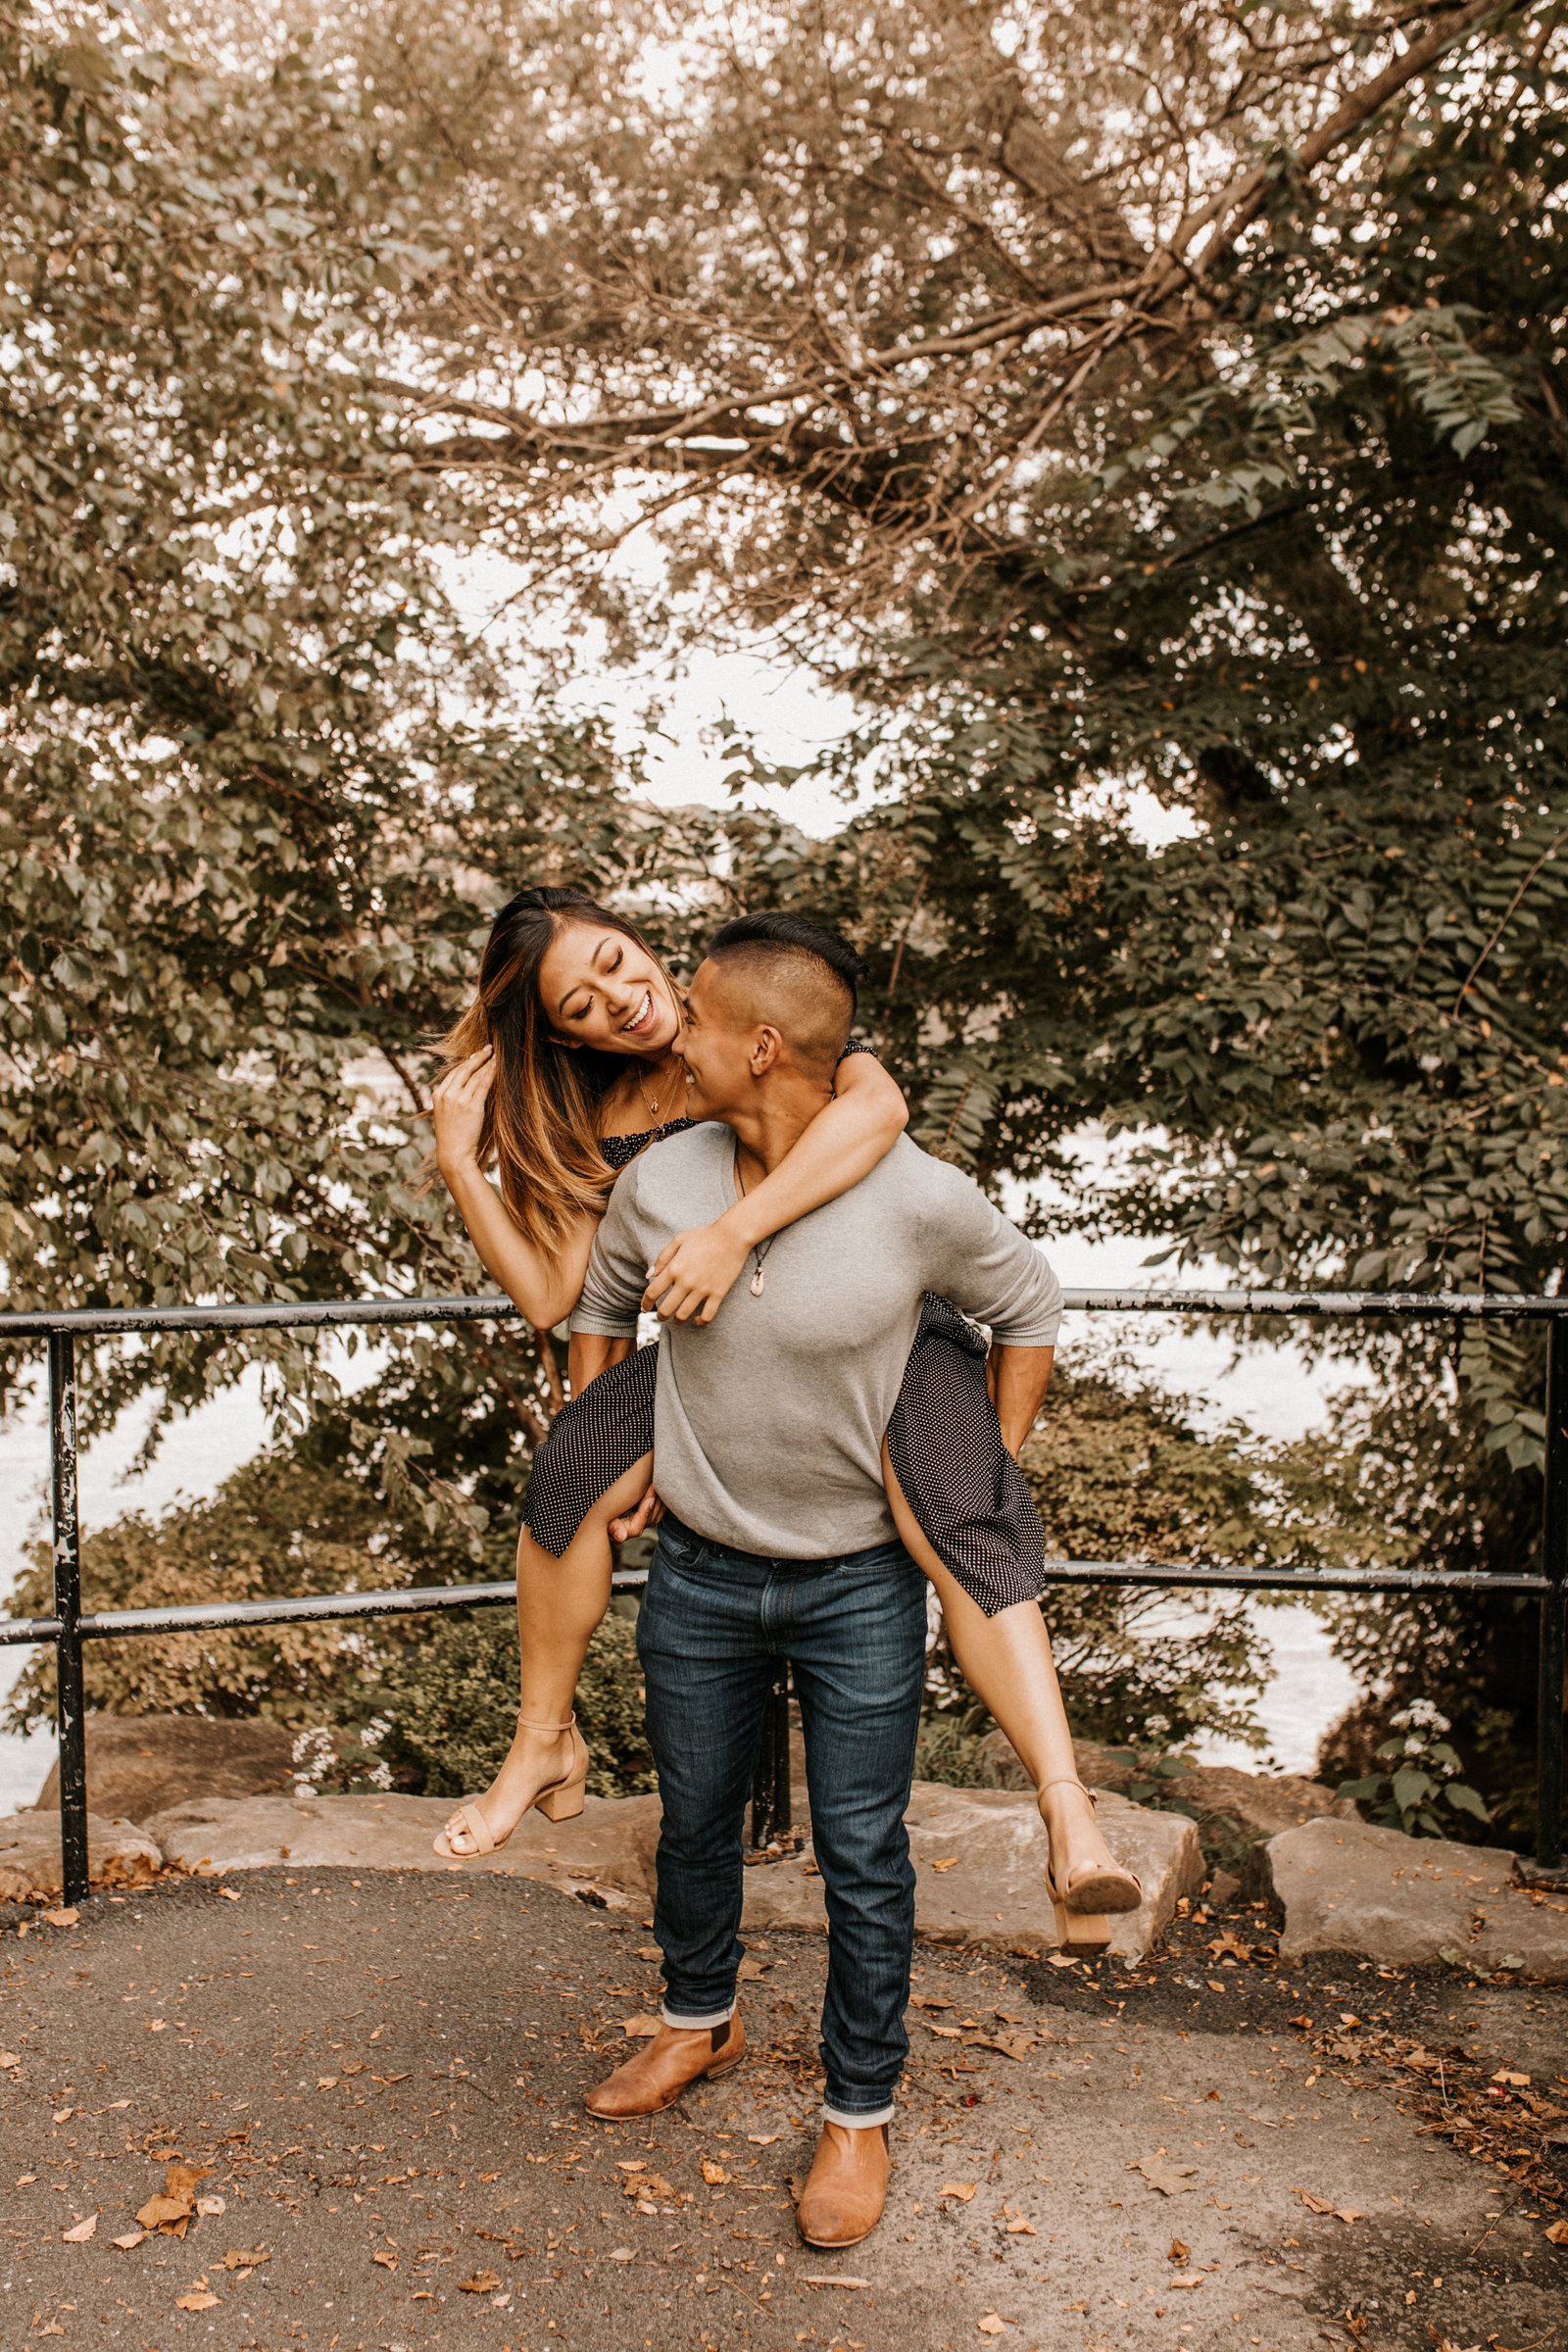 Tammy_Noel_Couples_Session_Sneak_Peeks_9.29.18-40